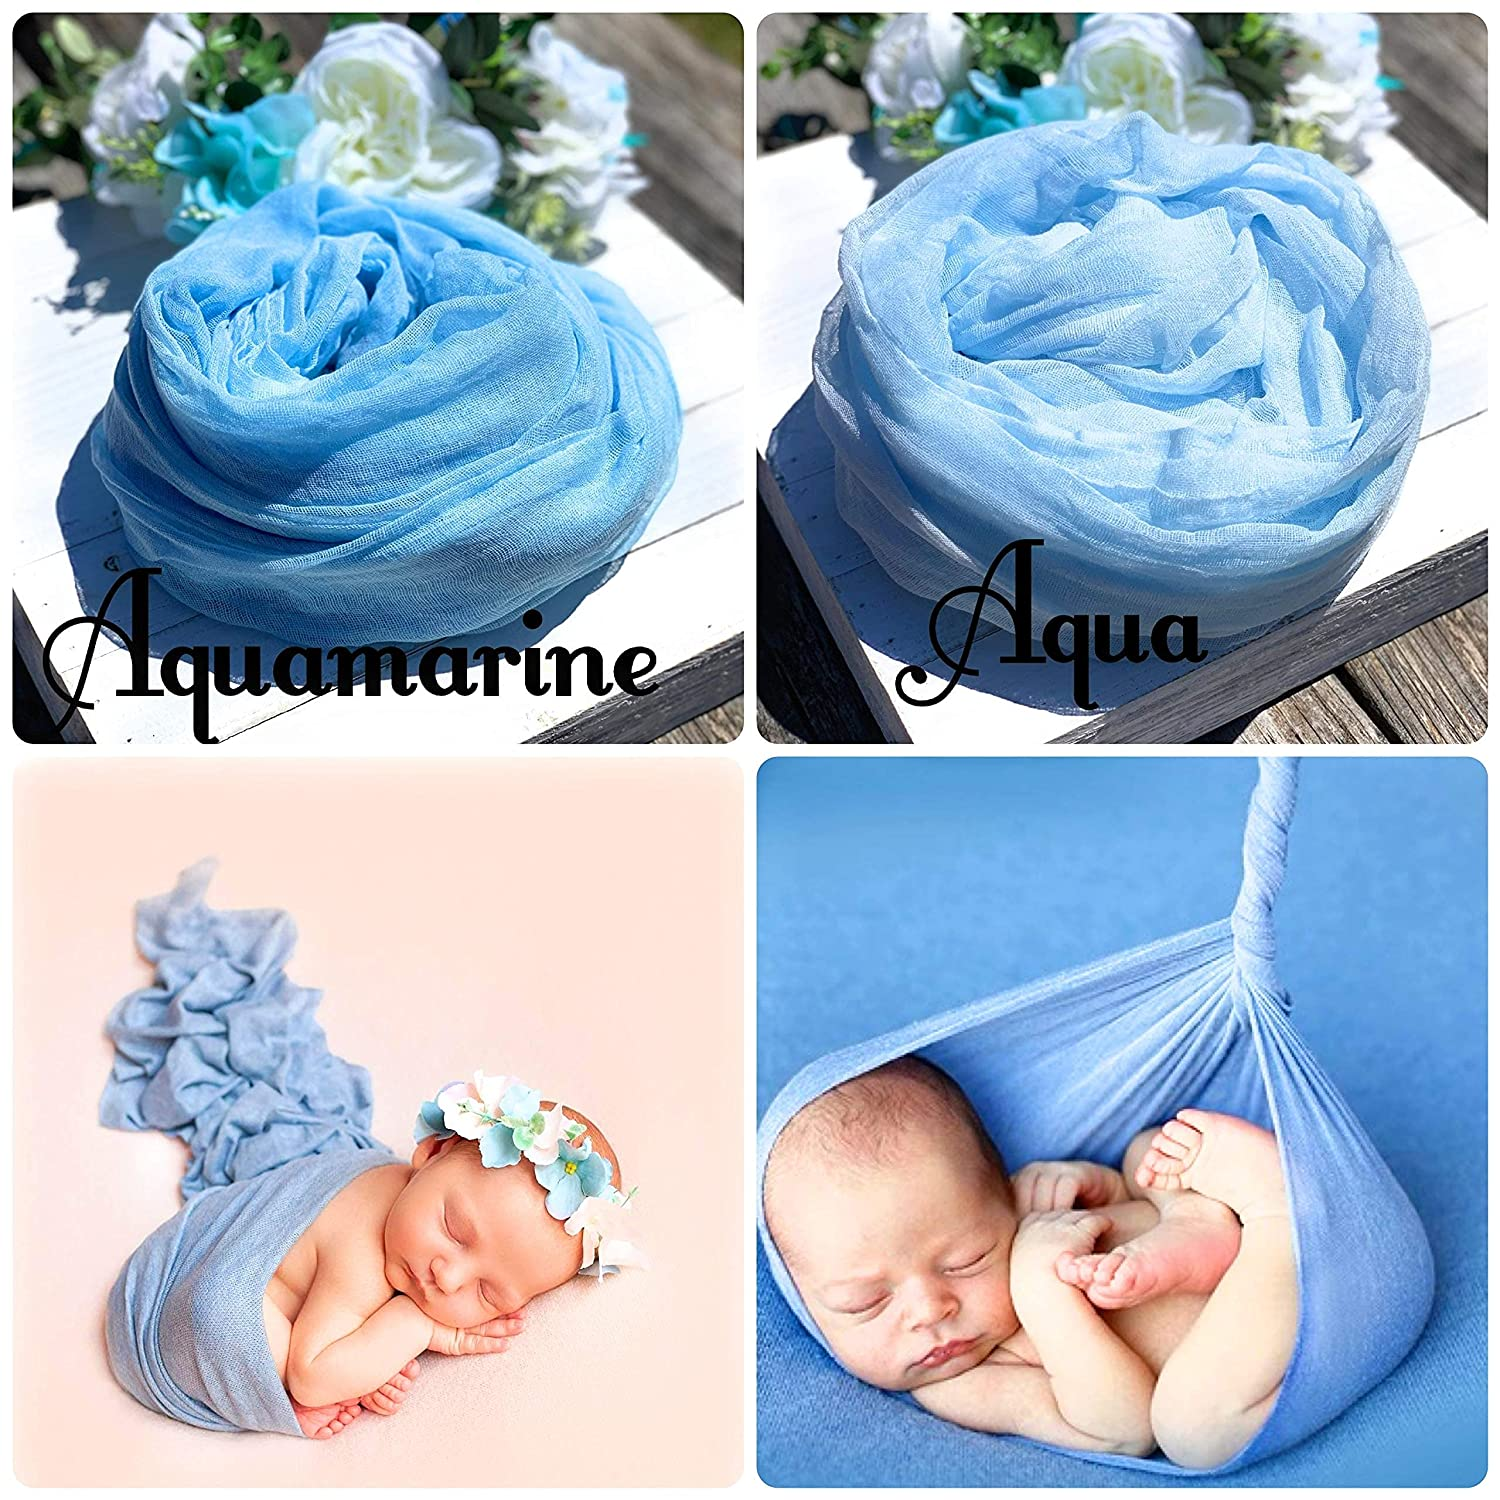 Baby Boy or Baby Girl Cheesecloth Wrap Teal Photography Prop Newborn Photography Wrap Maternity Photo Wrap